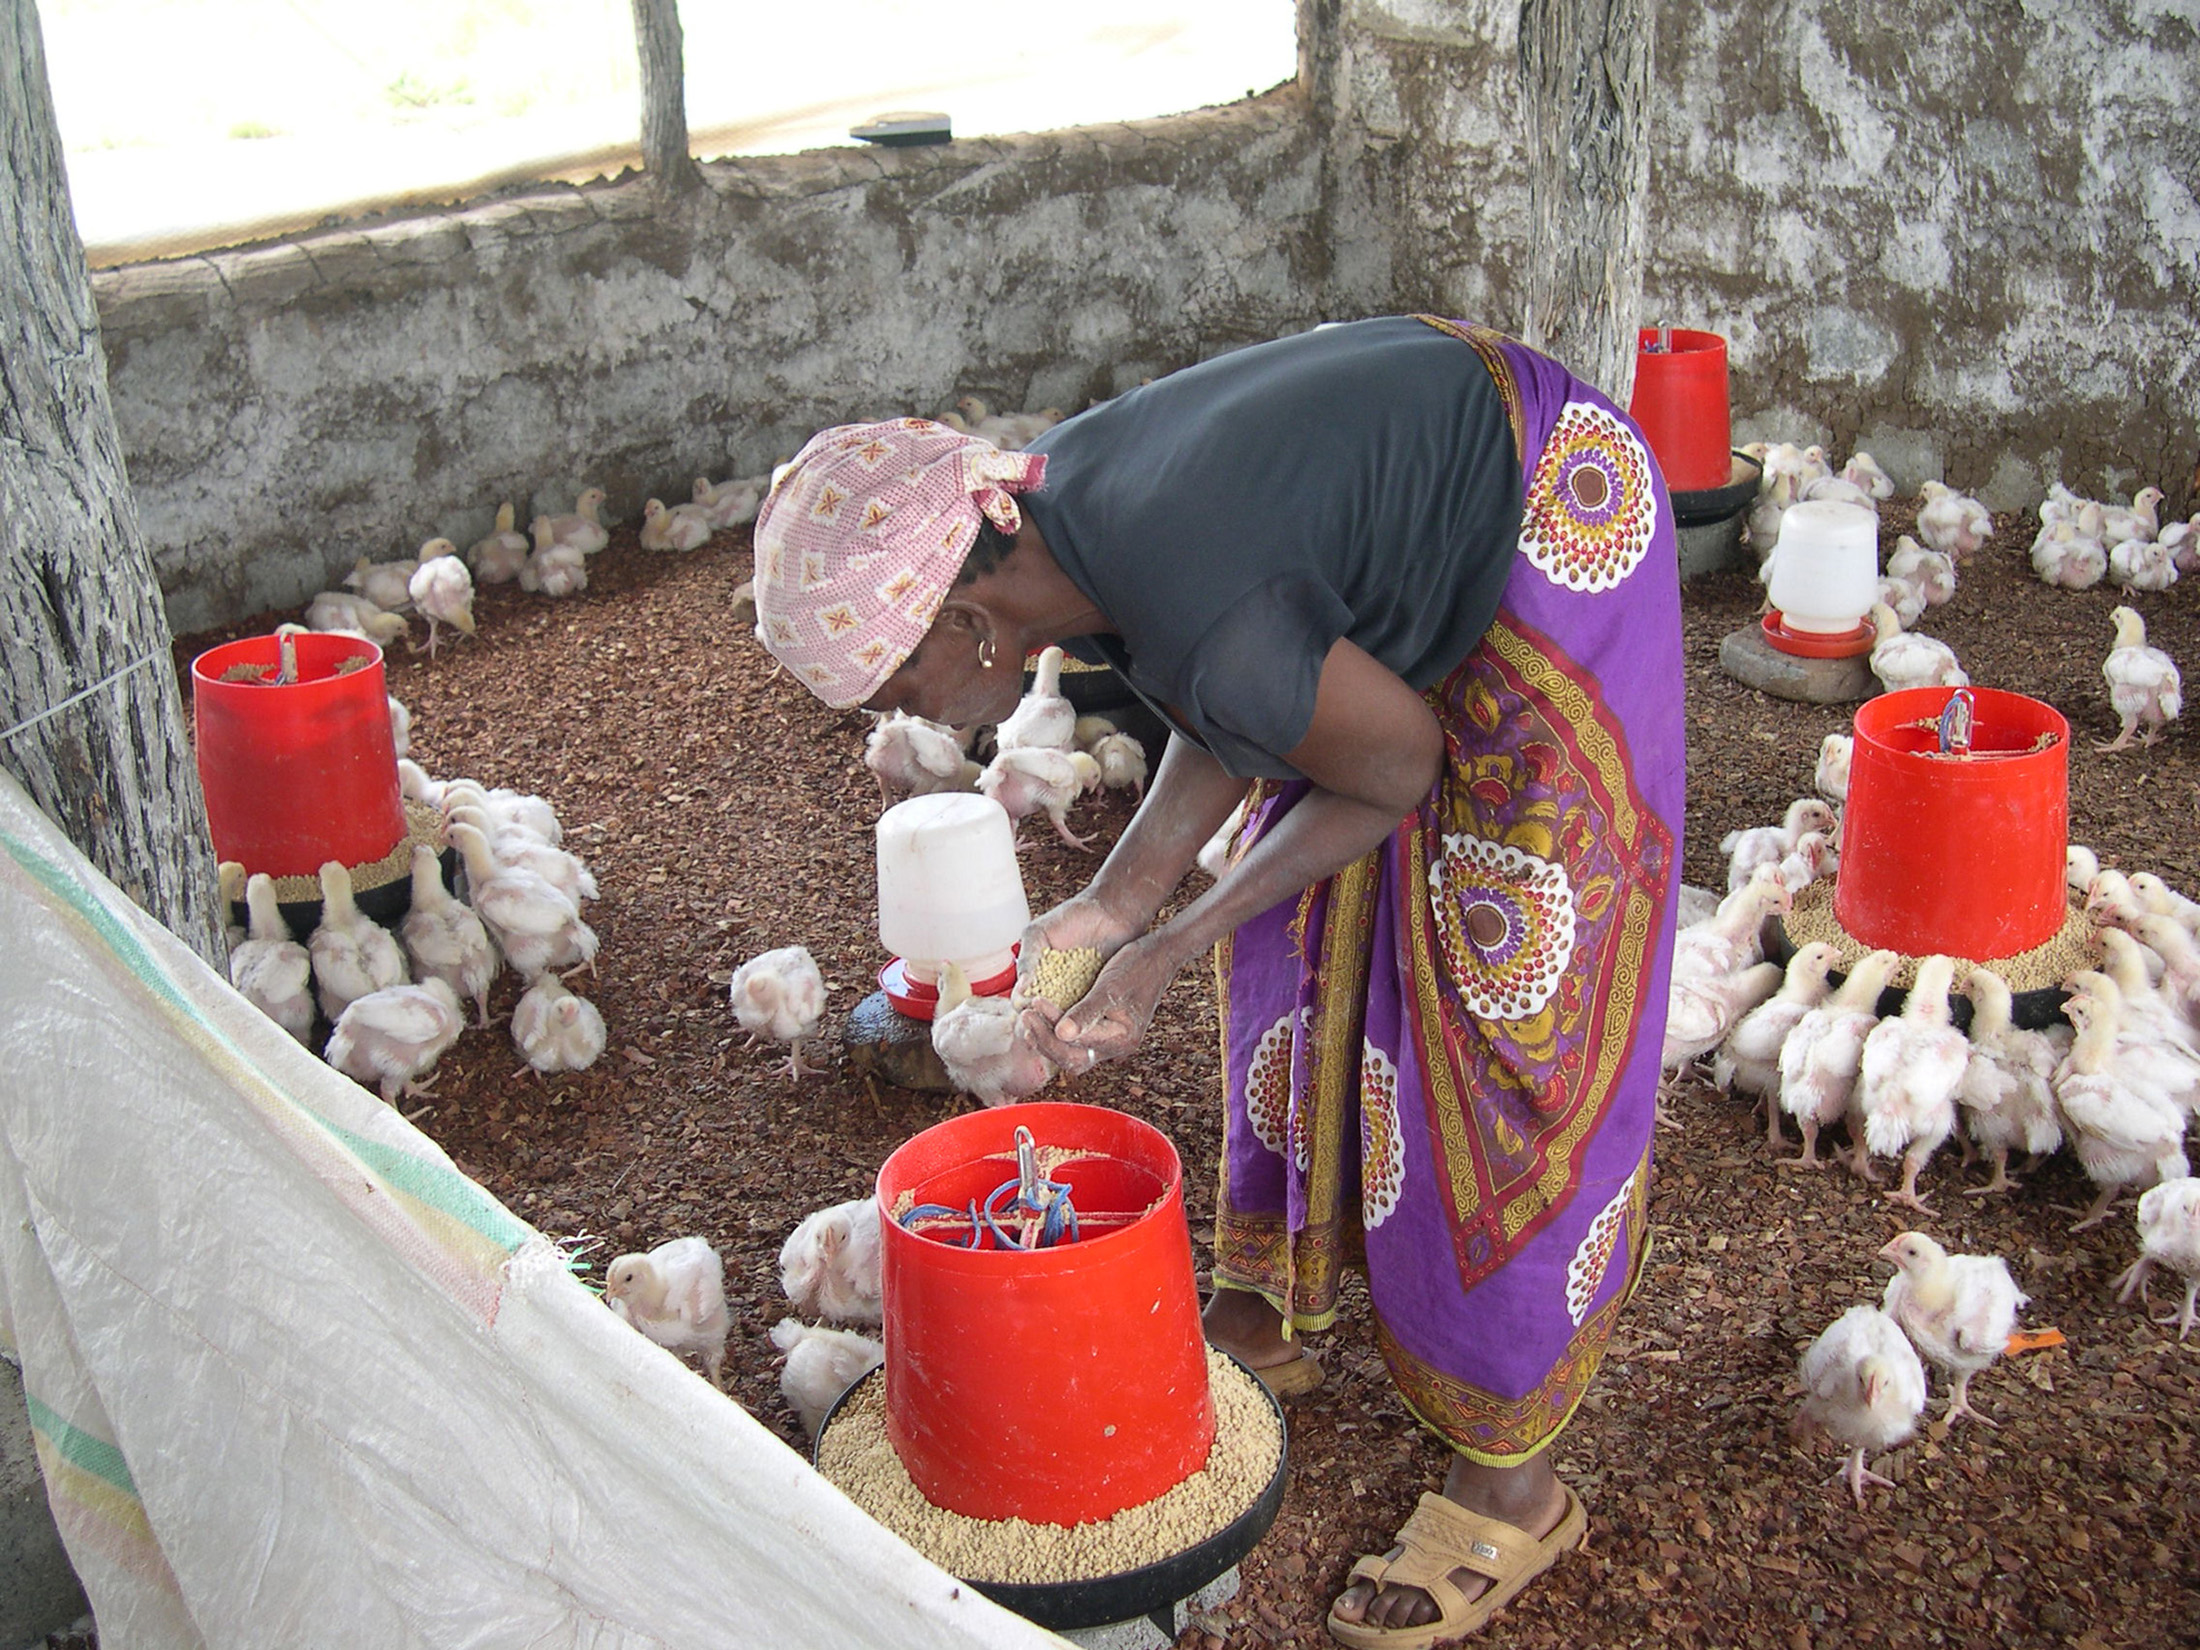 Luisa Antonio was among 5,000 people in Mozambique's northwestern Tete Province resettled by Brazilian mining company, Vale. The company has paid for the start-up costs of a poultry breeding business, but she will have to repay the money